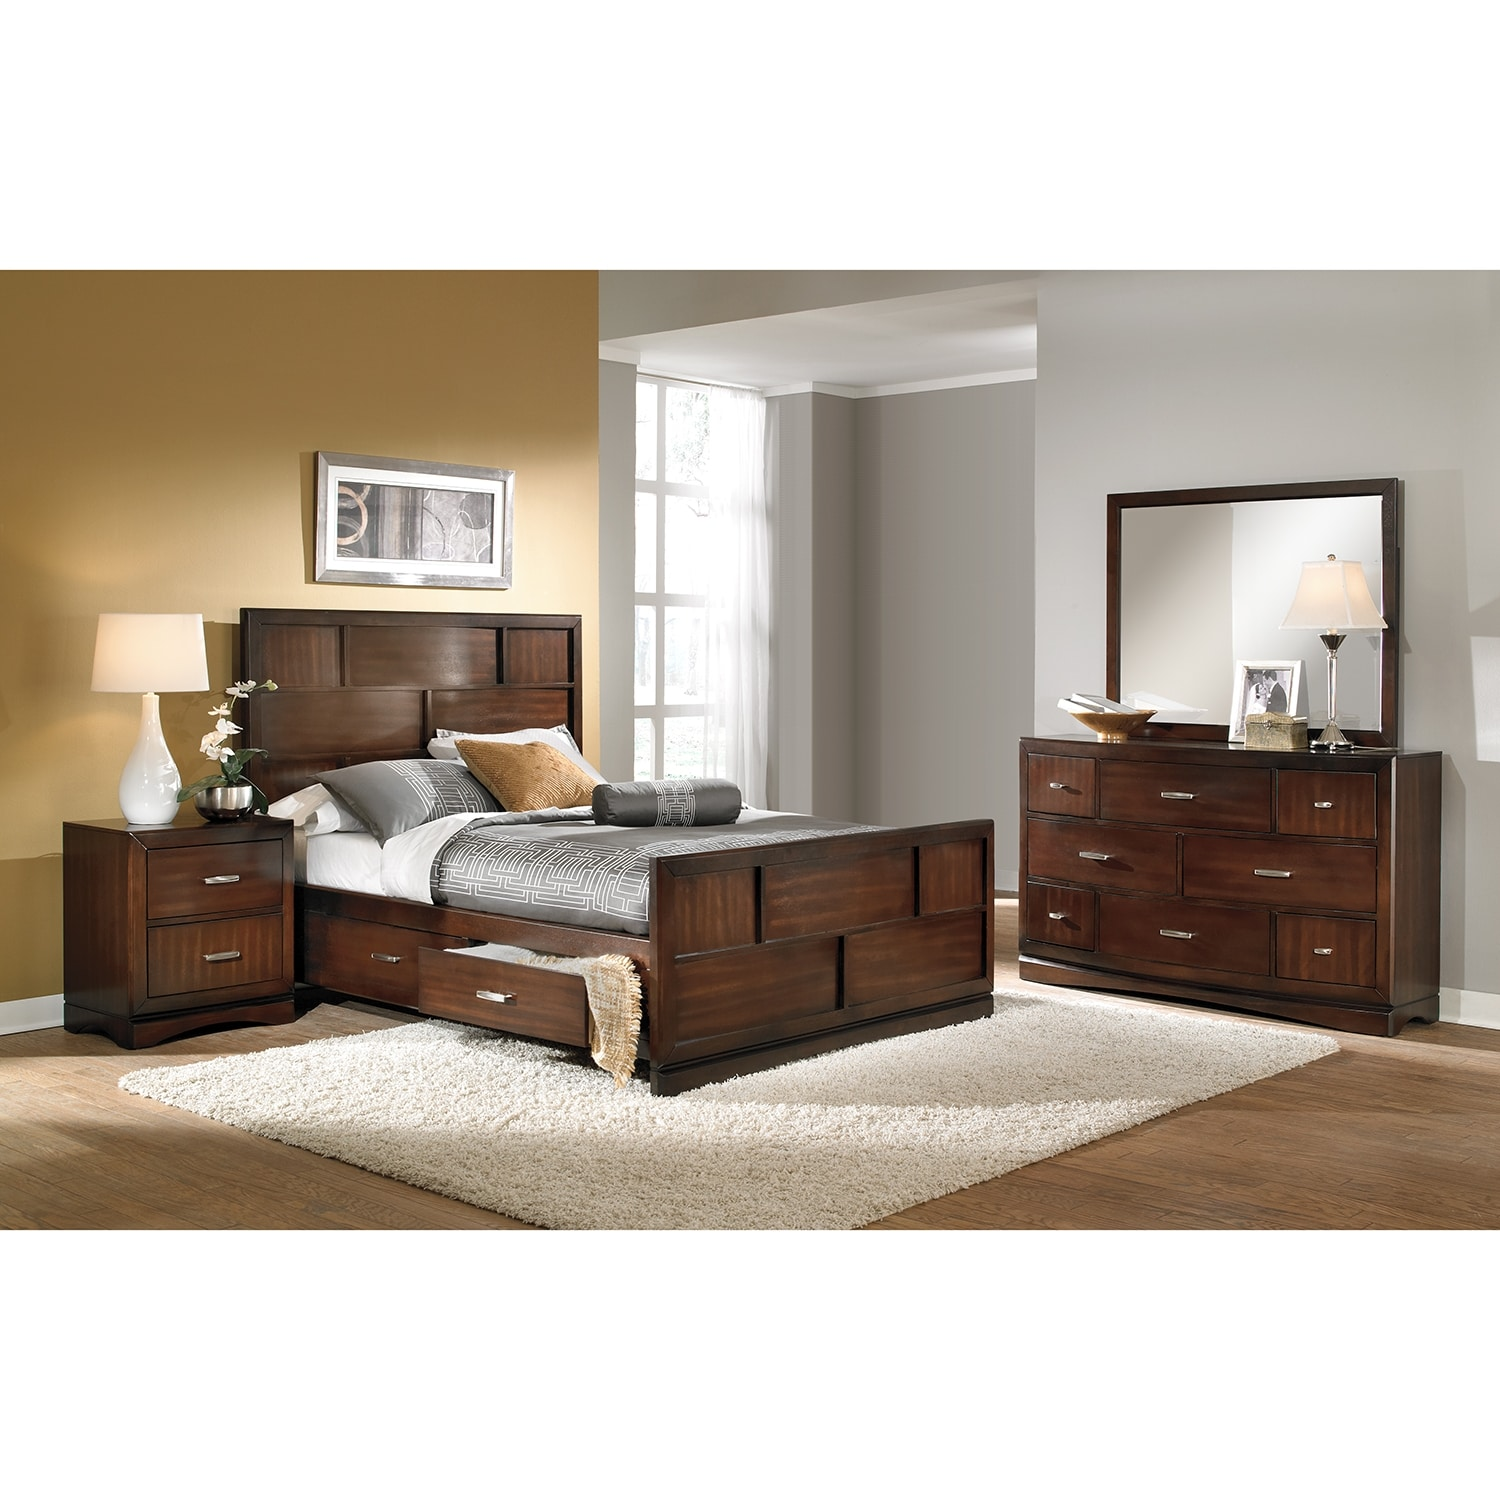 Toronto 6 piece king storage bedroom set pecan for American furniture bedroom furniture